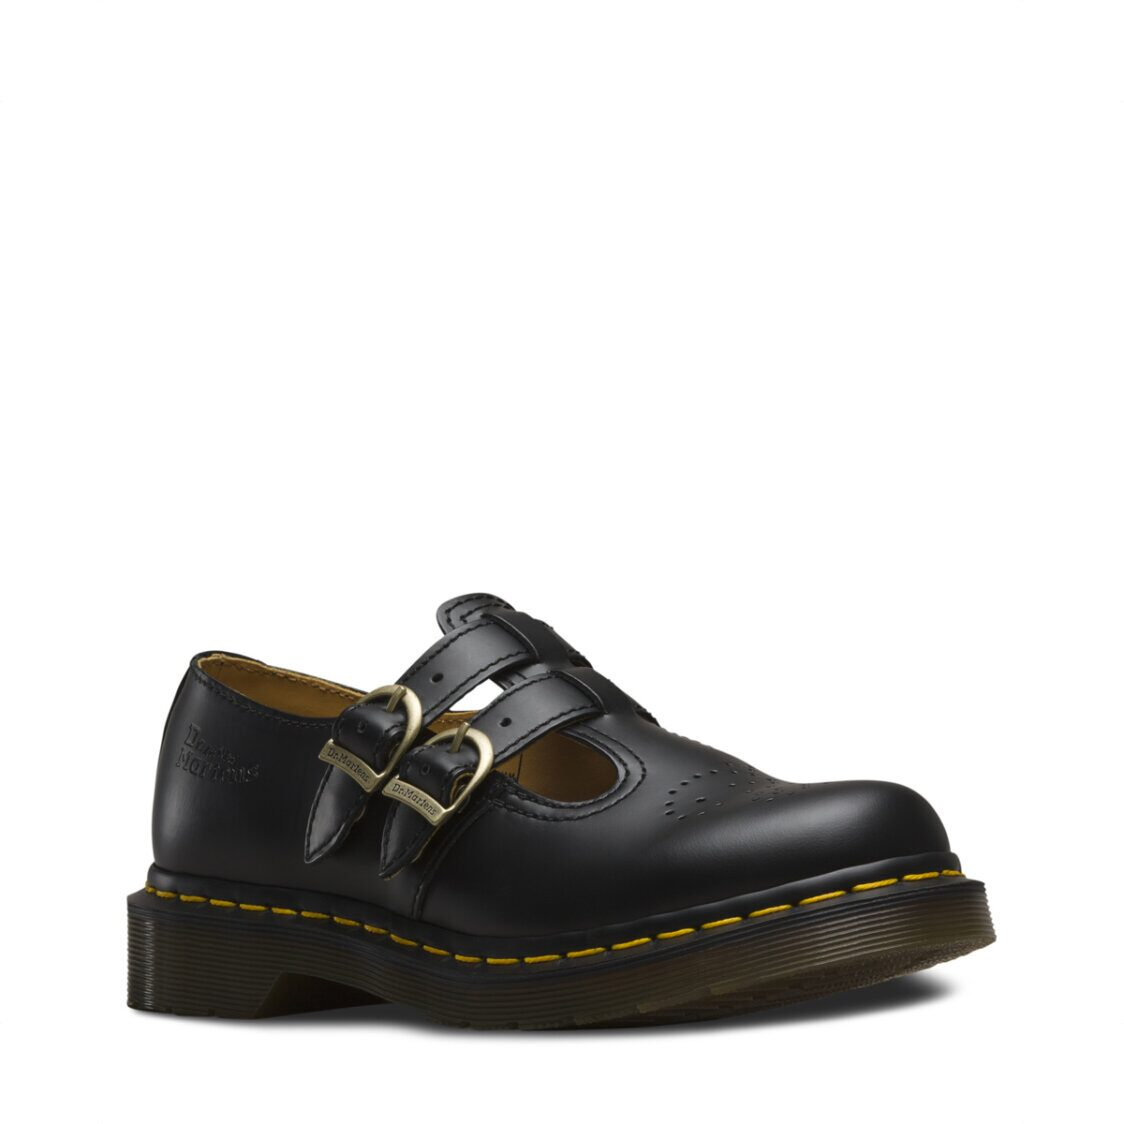 Dr Marten 8065 Smooth Leather Mary Jane Shoes